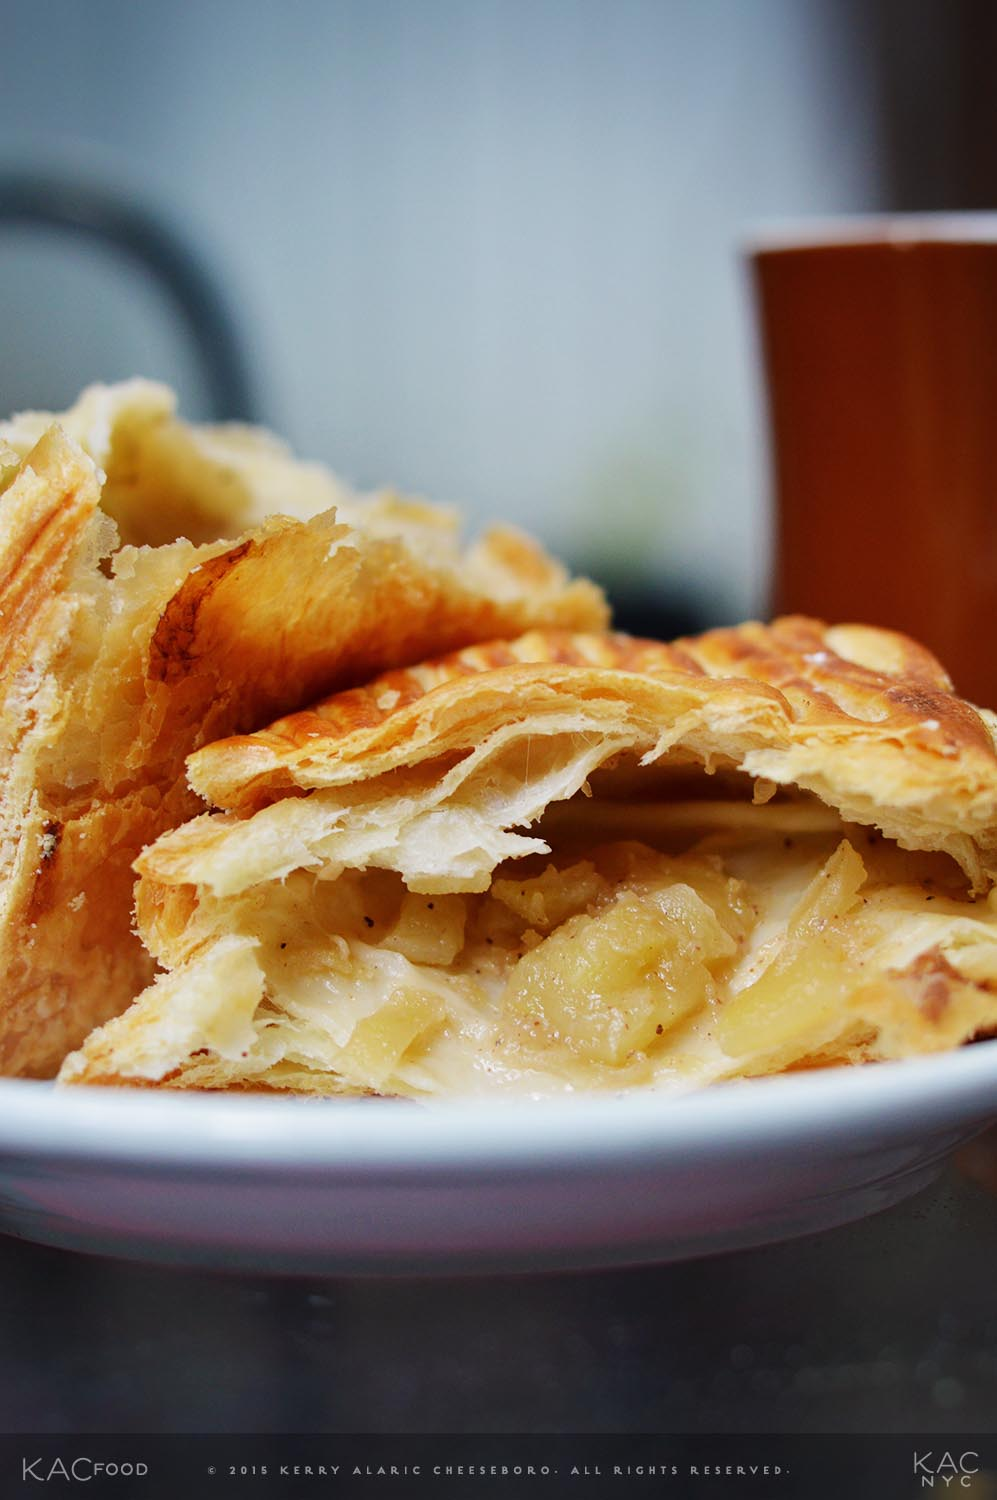 Chaider (Chai Apple Cider), Apple Turnover | Cafe Jax | Upper East Side, NYC